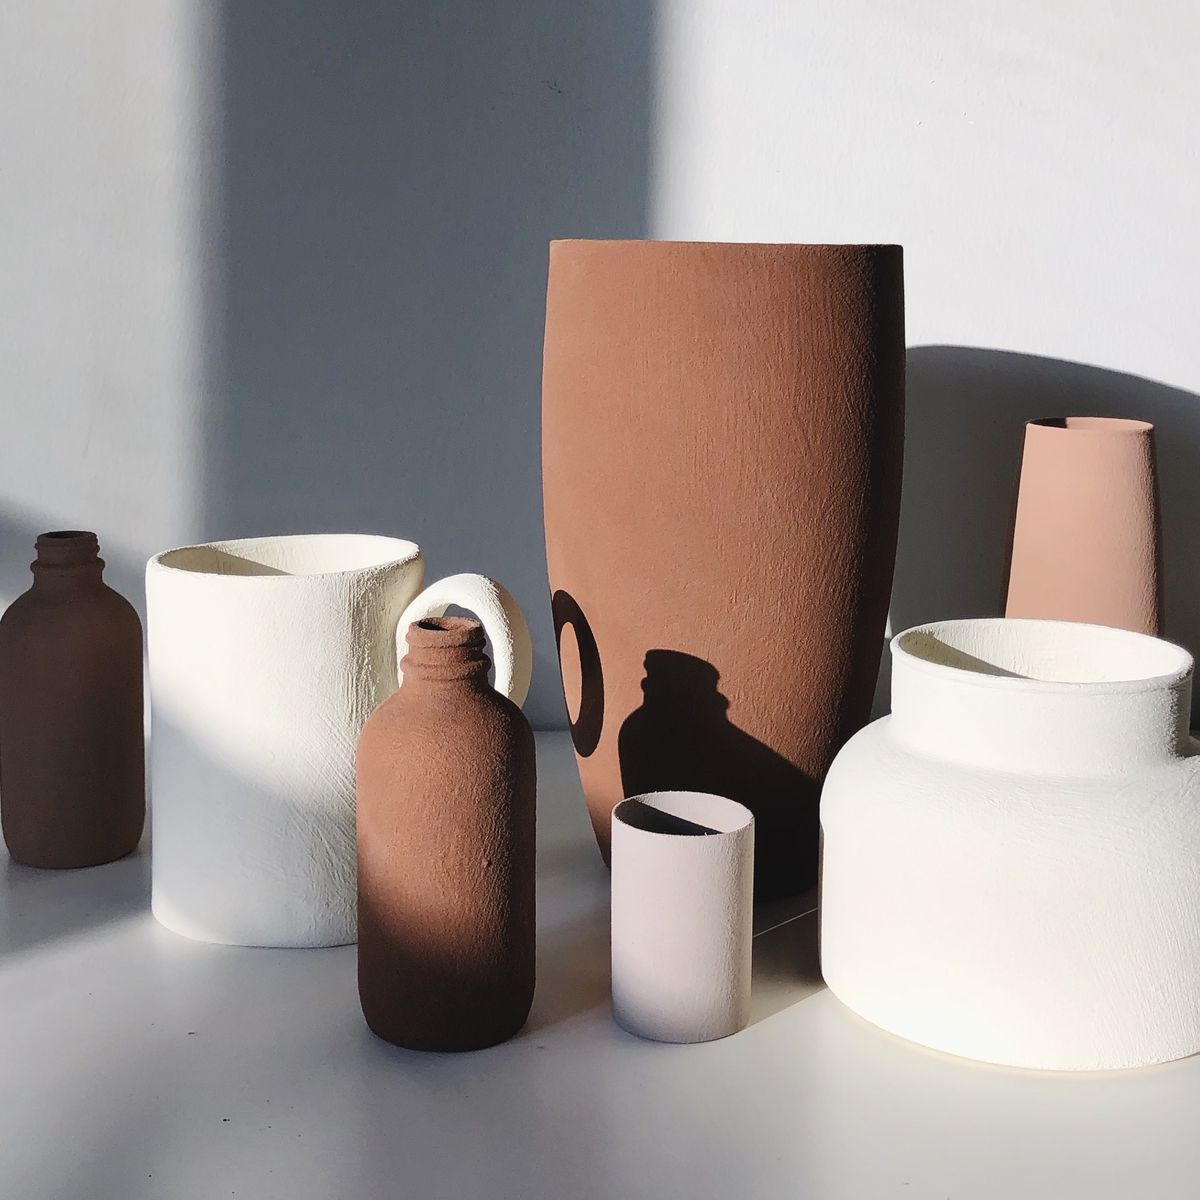 Diy Terracotta Paint Hack How To Upcycle Old Vases